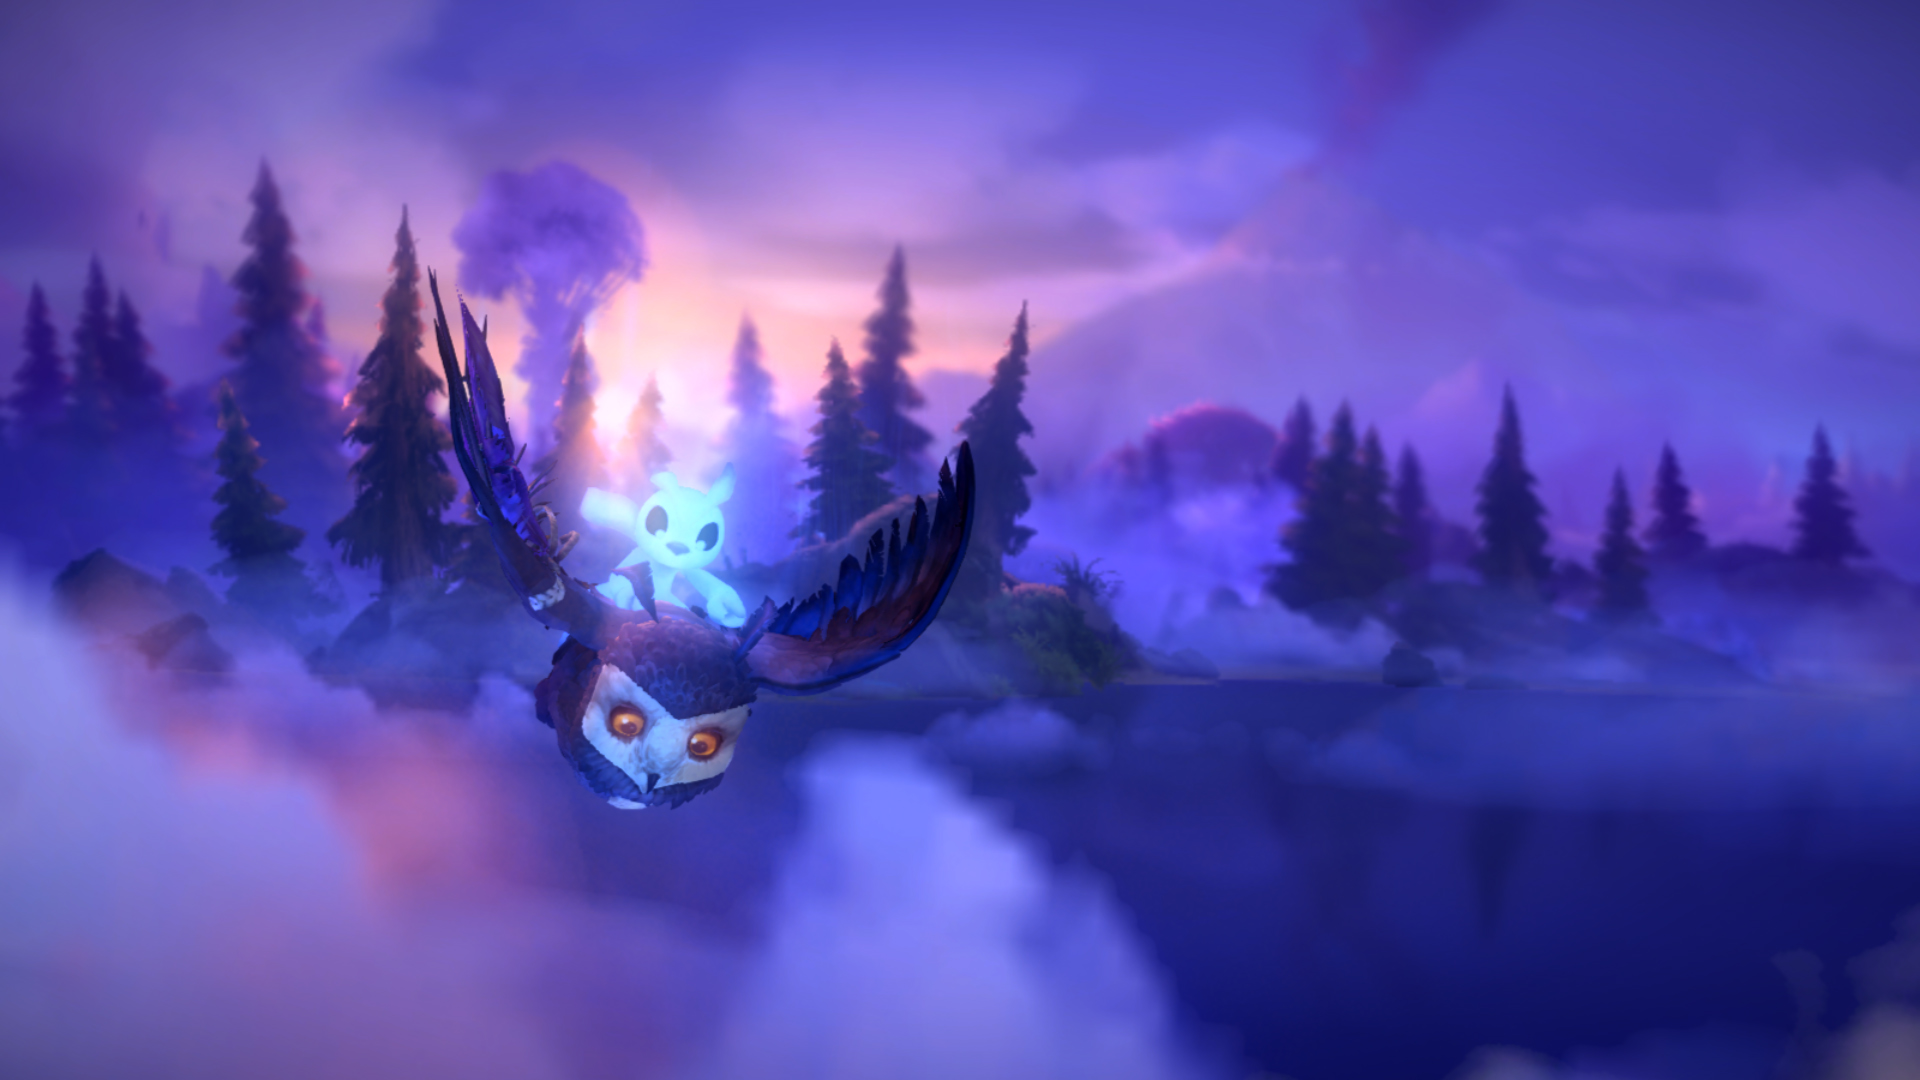 Ori and the Blind Forest + Ori and the Will of the Wisps - 3. února 2021